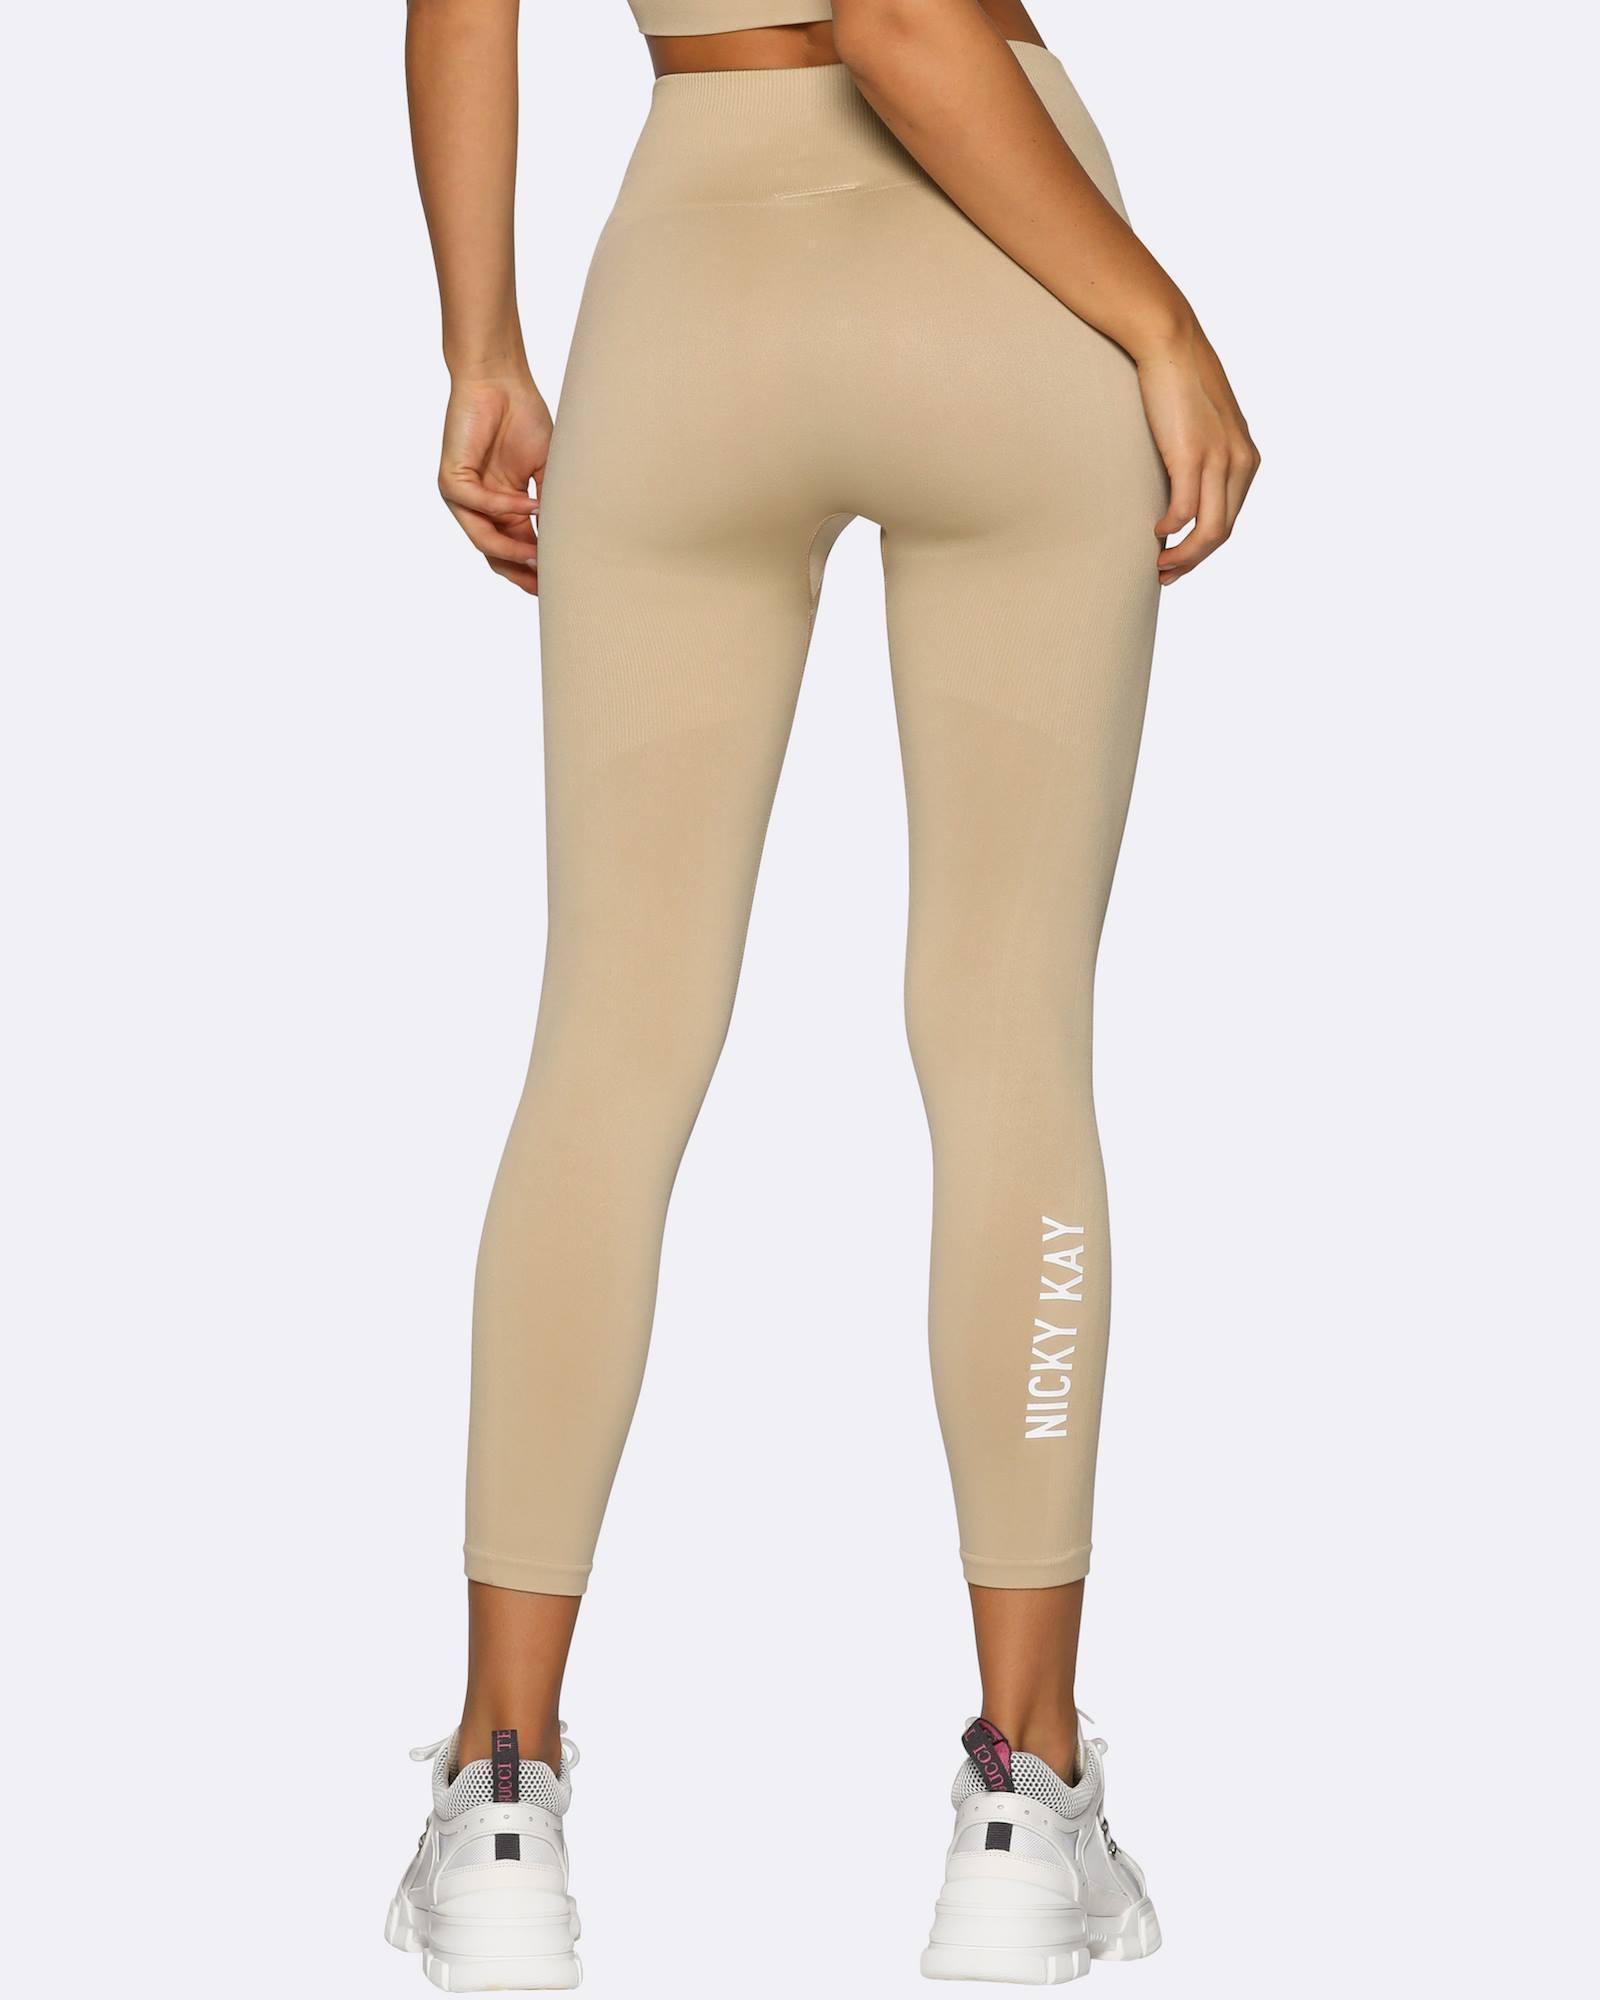 Nicky Kay Seamless 7/8 Tights - Cream